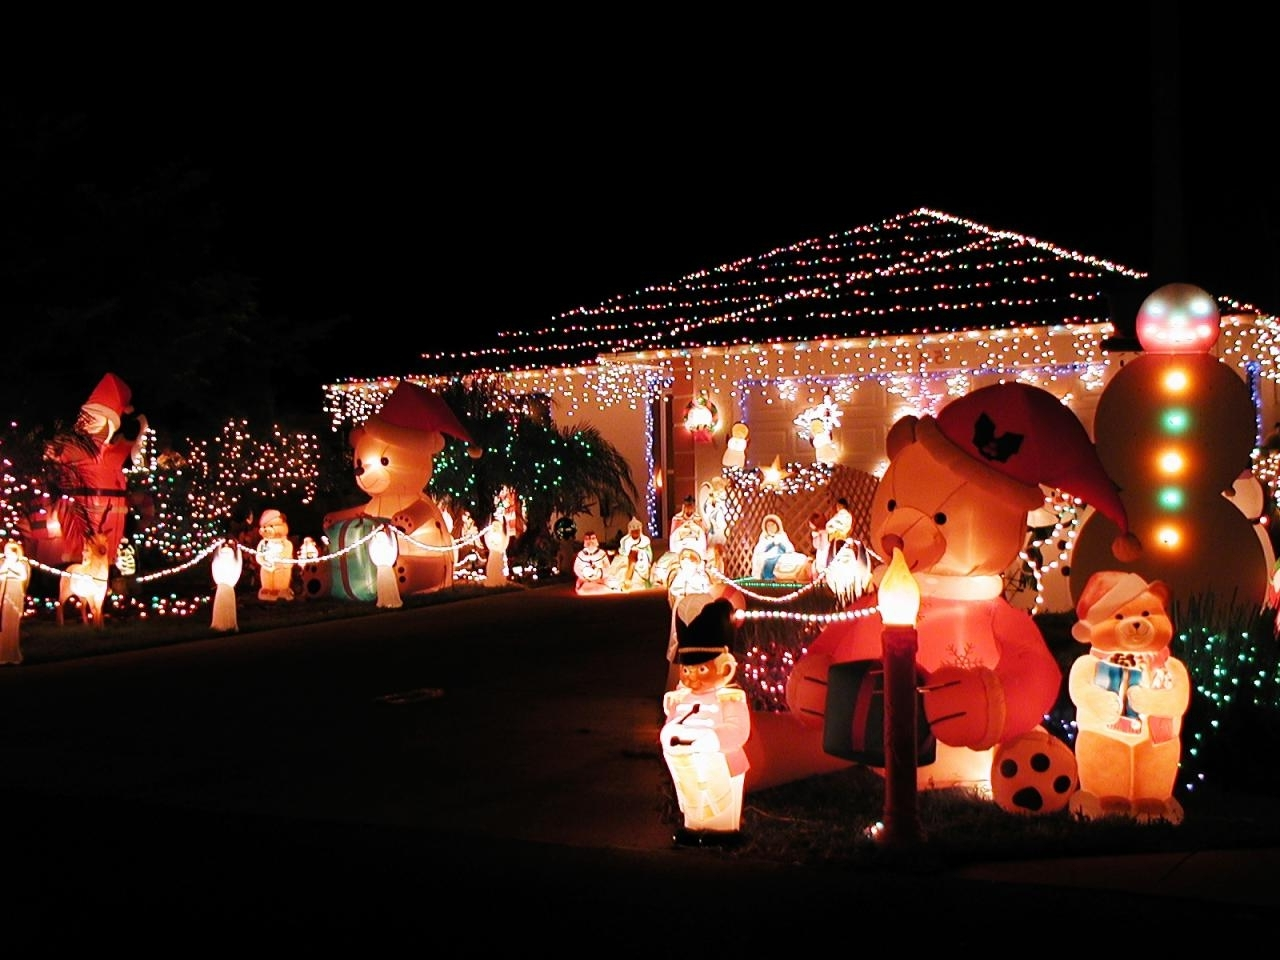 Diy With Regard To Hanging Outdoor Holiday Lights (View 9 of 20)